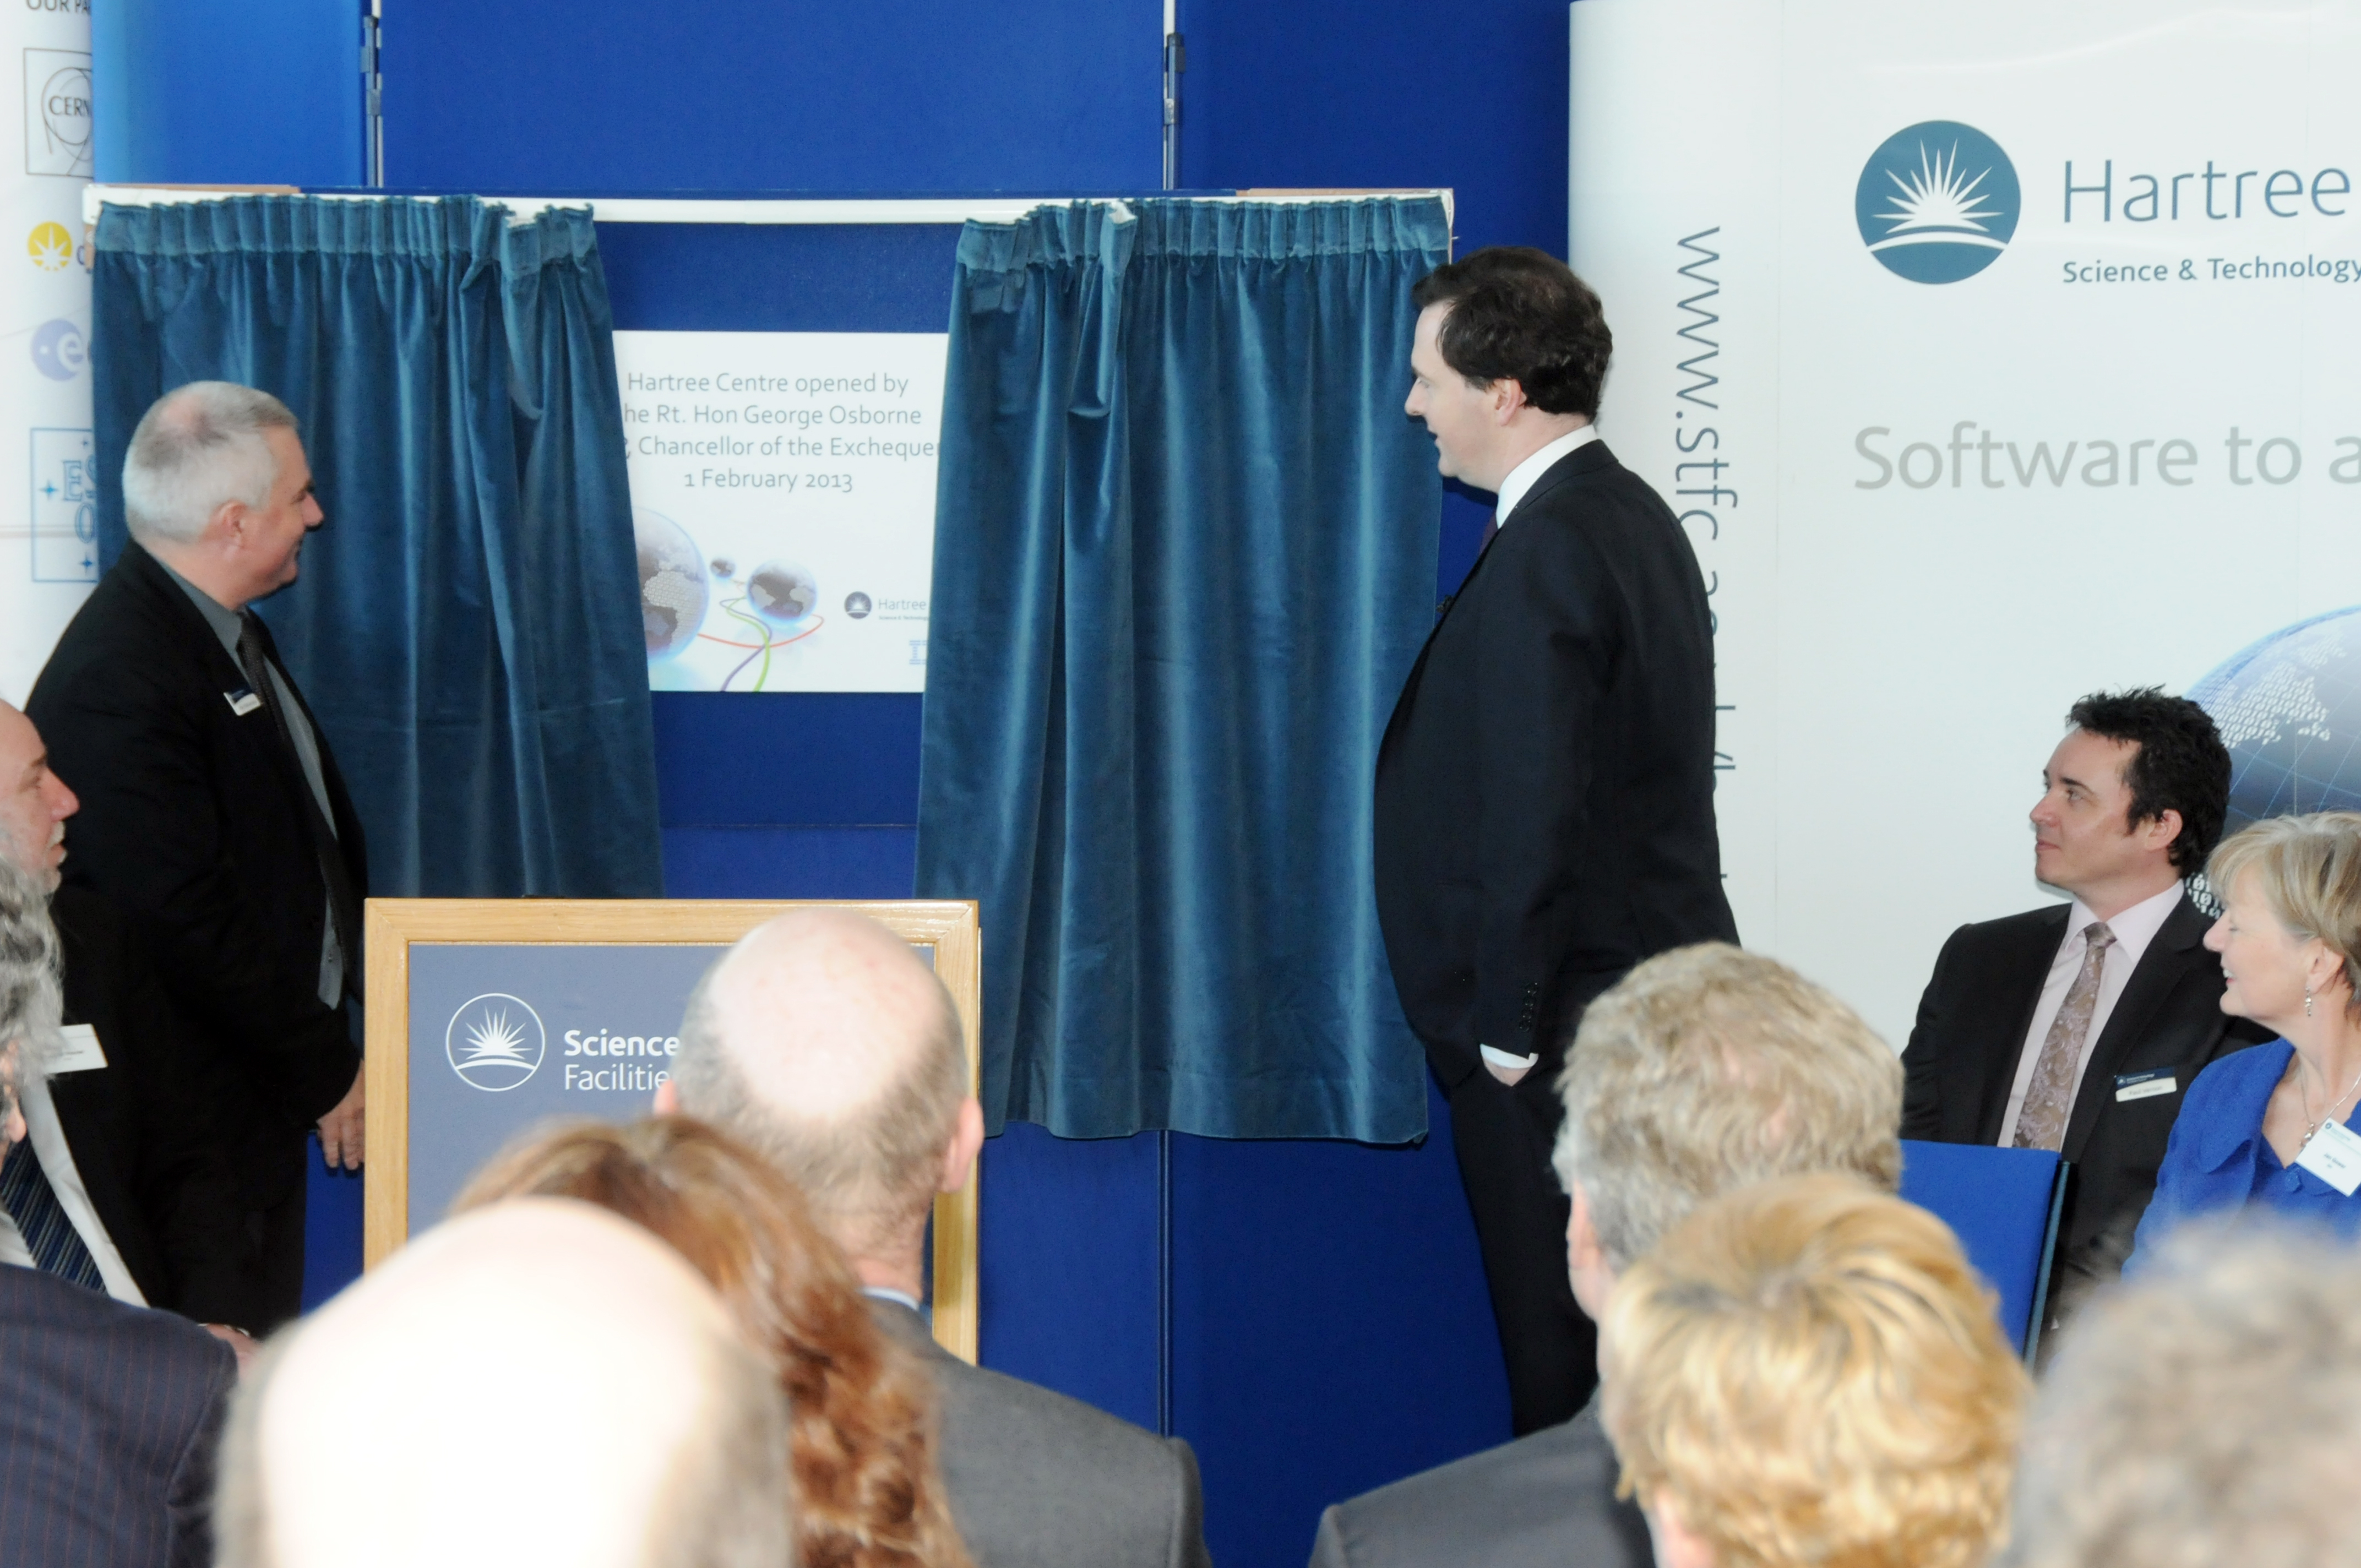 Official opening of the Hartree Centre